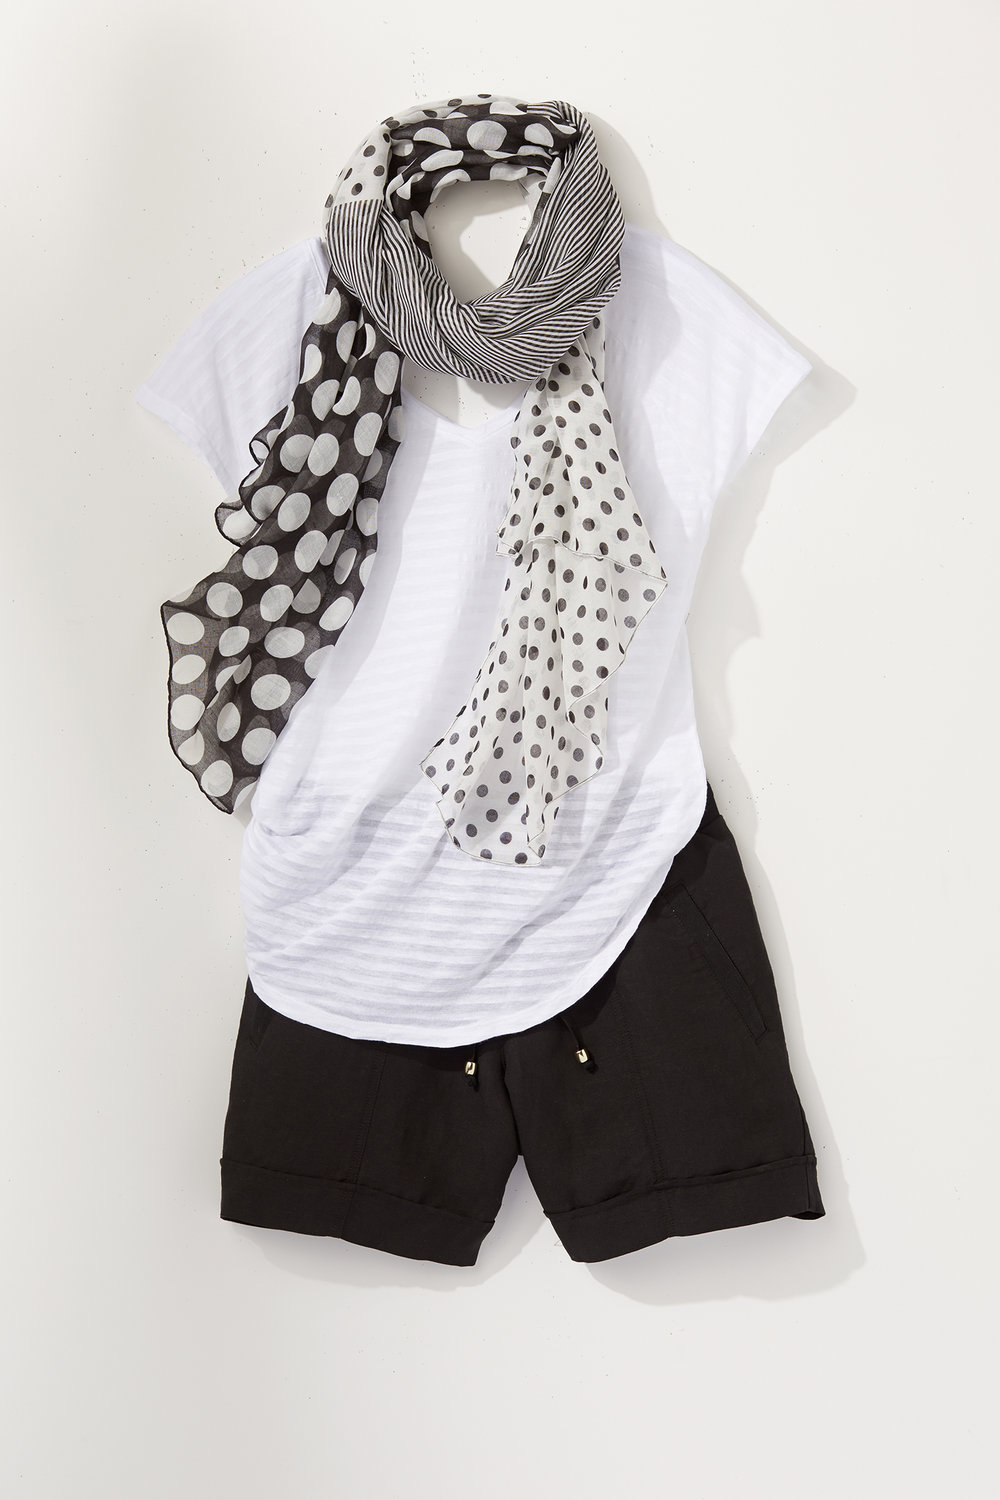 laydown of white t-shirt and black shorts with black and white scarf